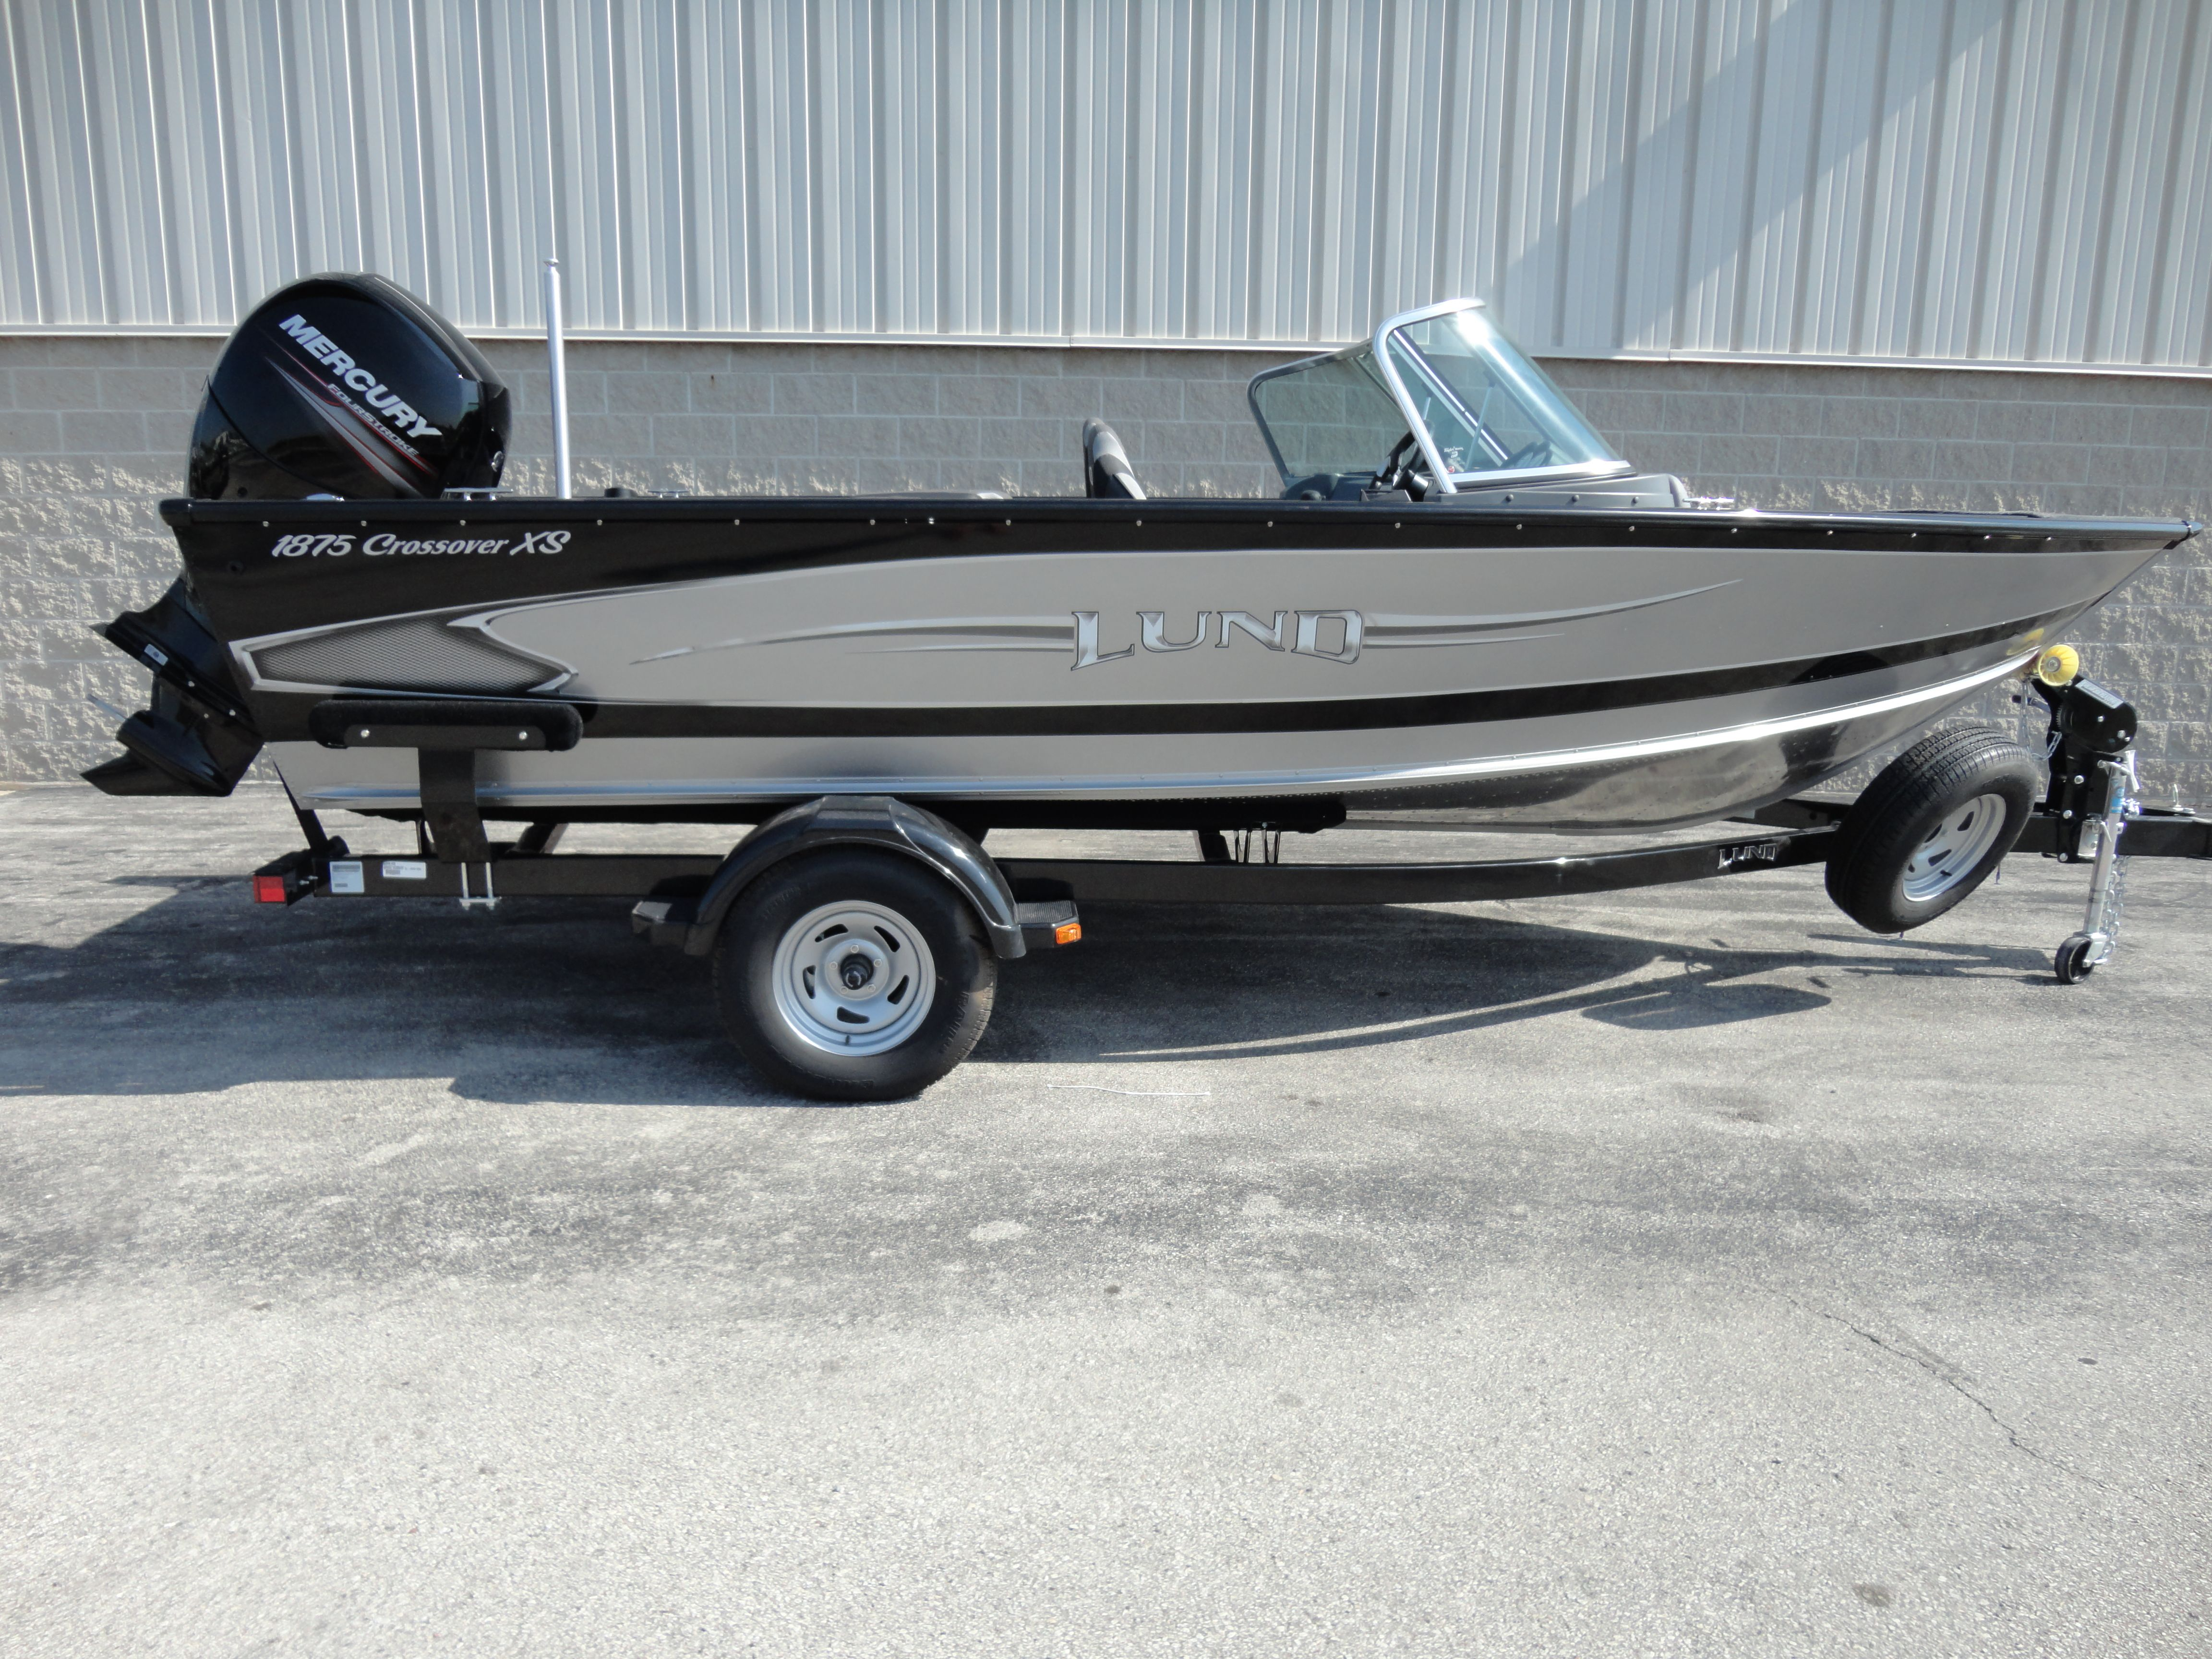 2014 lund 18 crossover is a fish and ski boat this is great for any 2014 lund 18 crossover is a fish and ski boat this is great for any family publicscrutiny Images